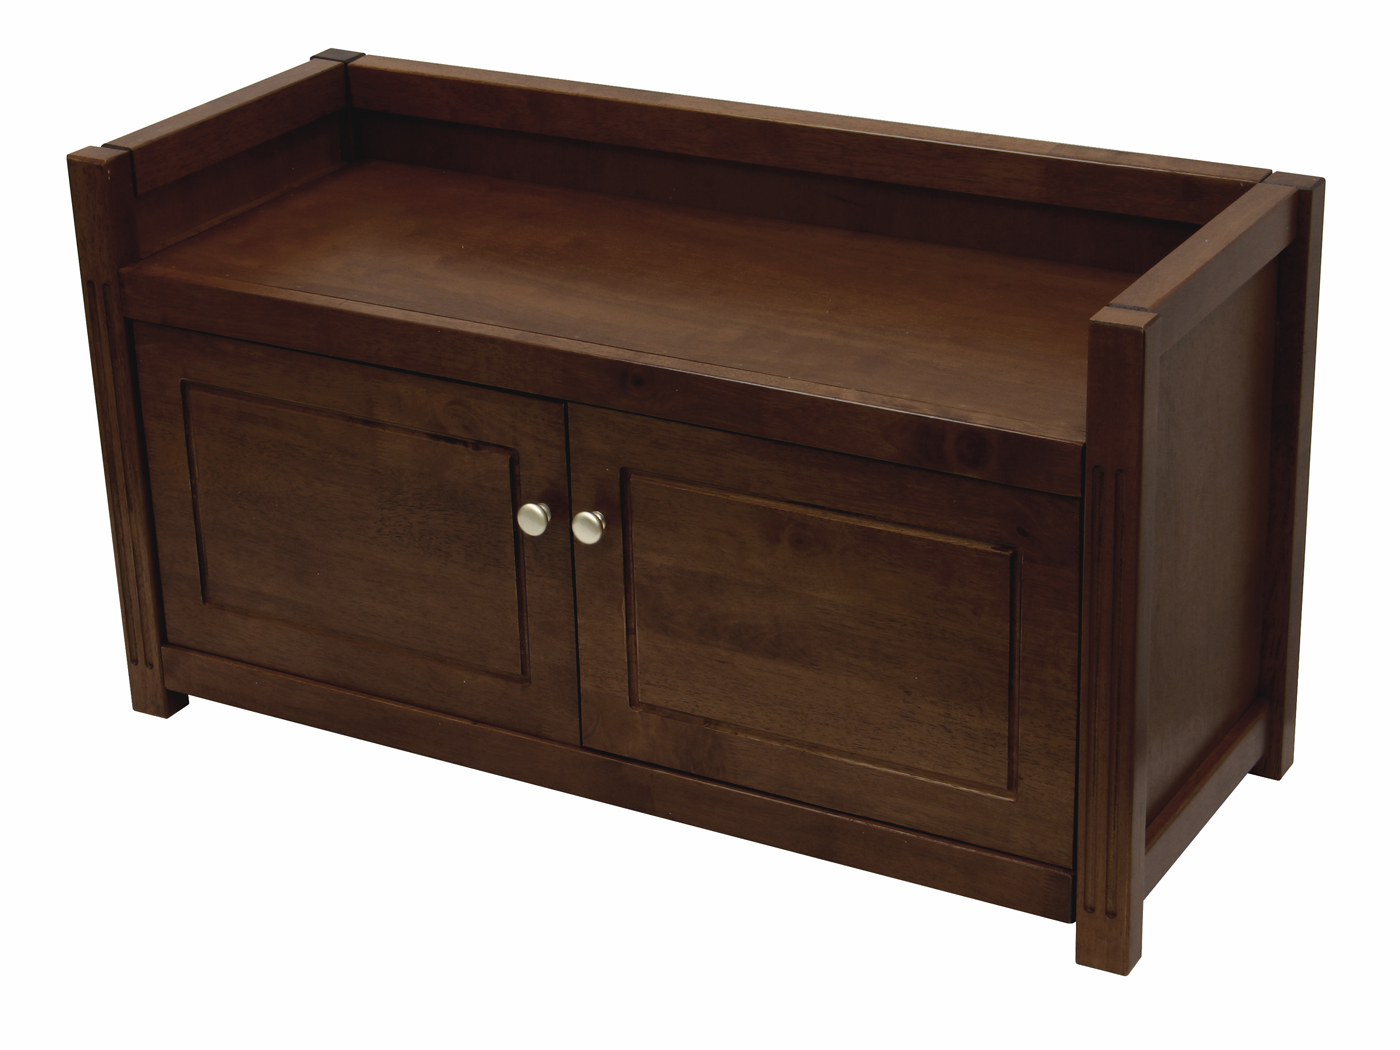 Winsome Wood Regalia Seating Study Bench With Storage Shelf Lockable Cabinet